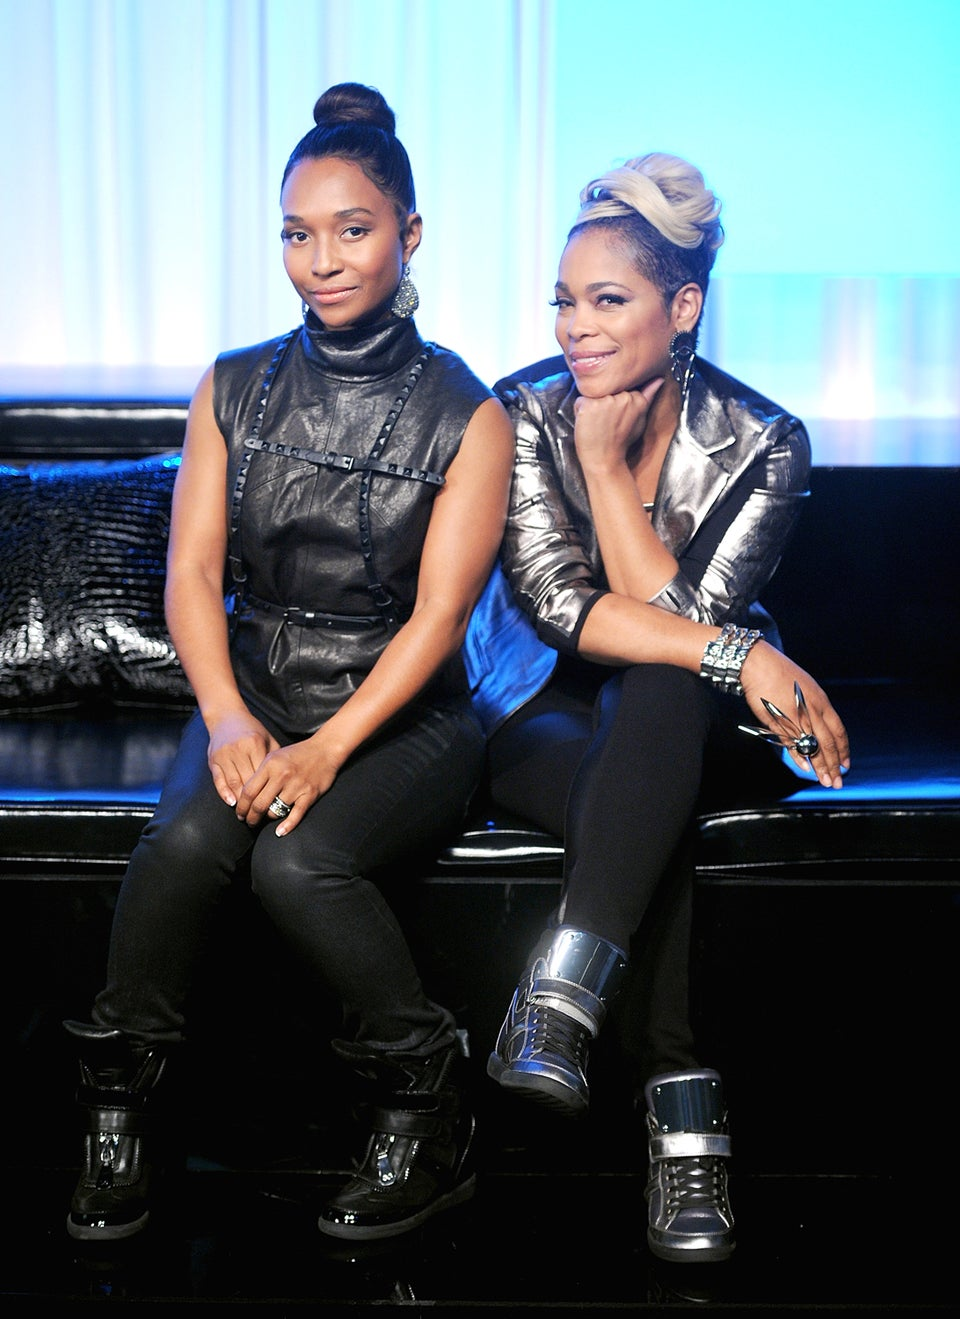 EXCLUSIVE: 5 Things You Didn't Know About Chilli and T-Boz from TLC